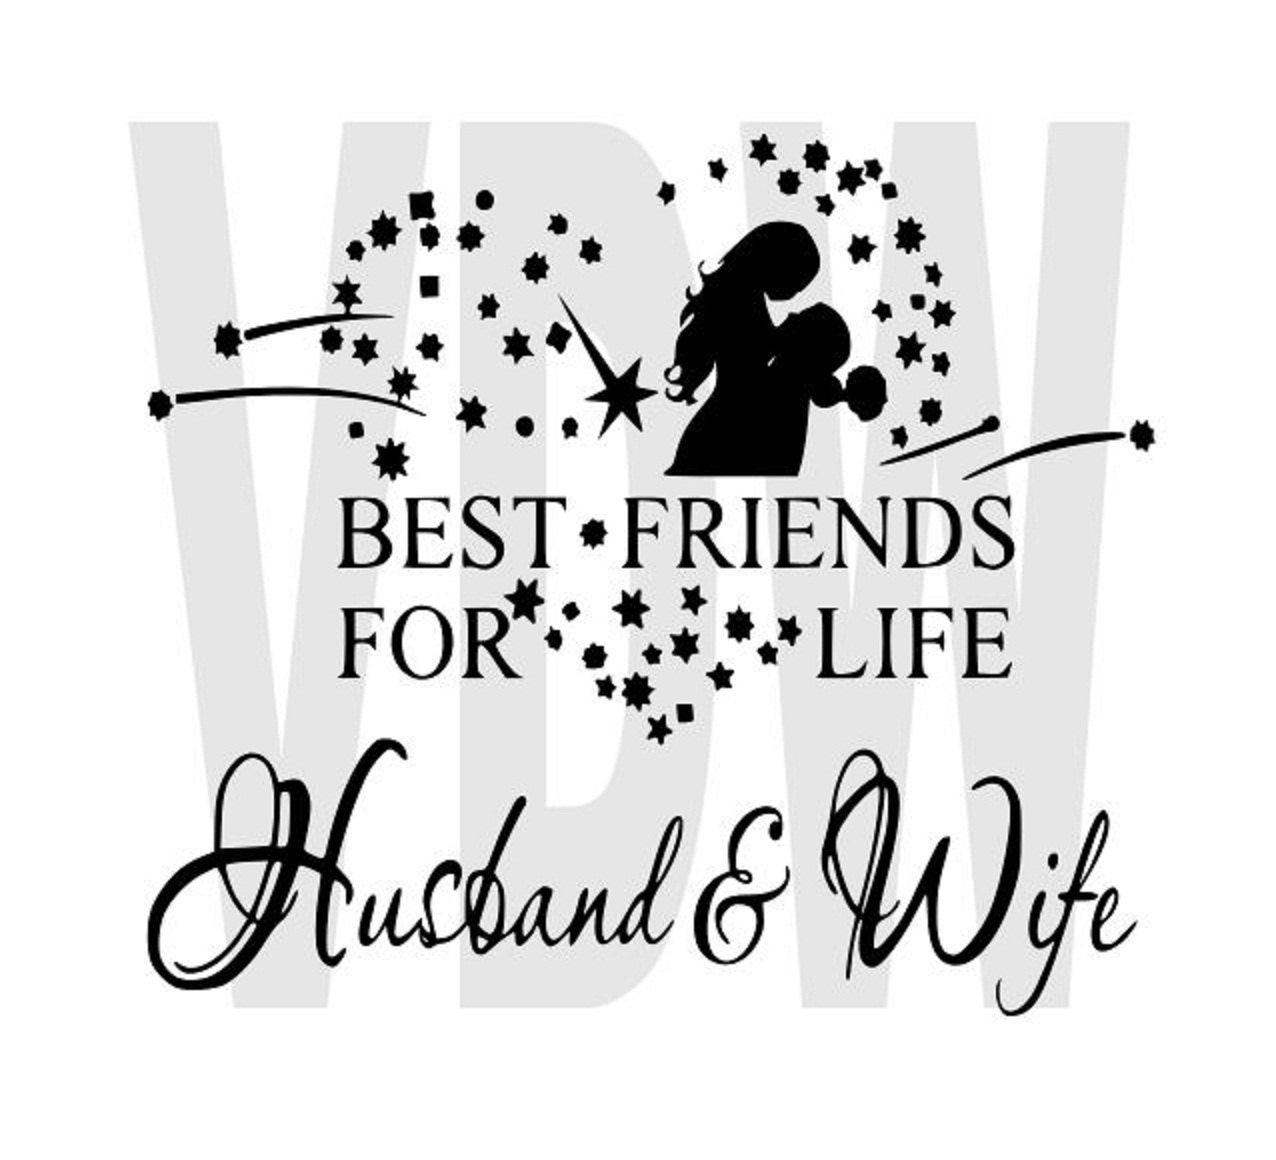 Best Husband And Wife: Best Friends For Life Husband And Wife Cutting By